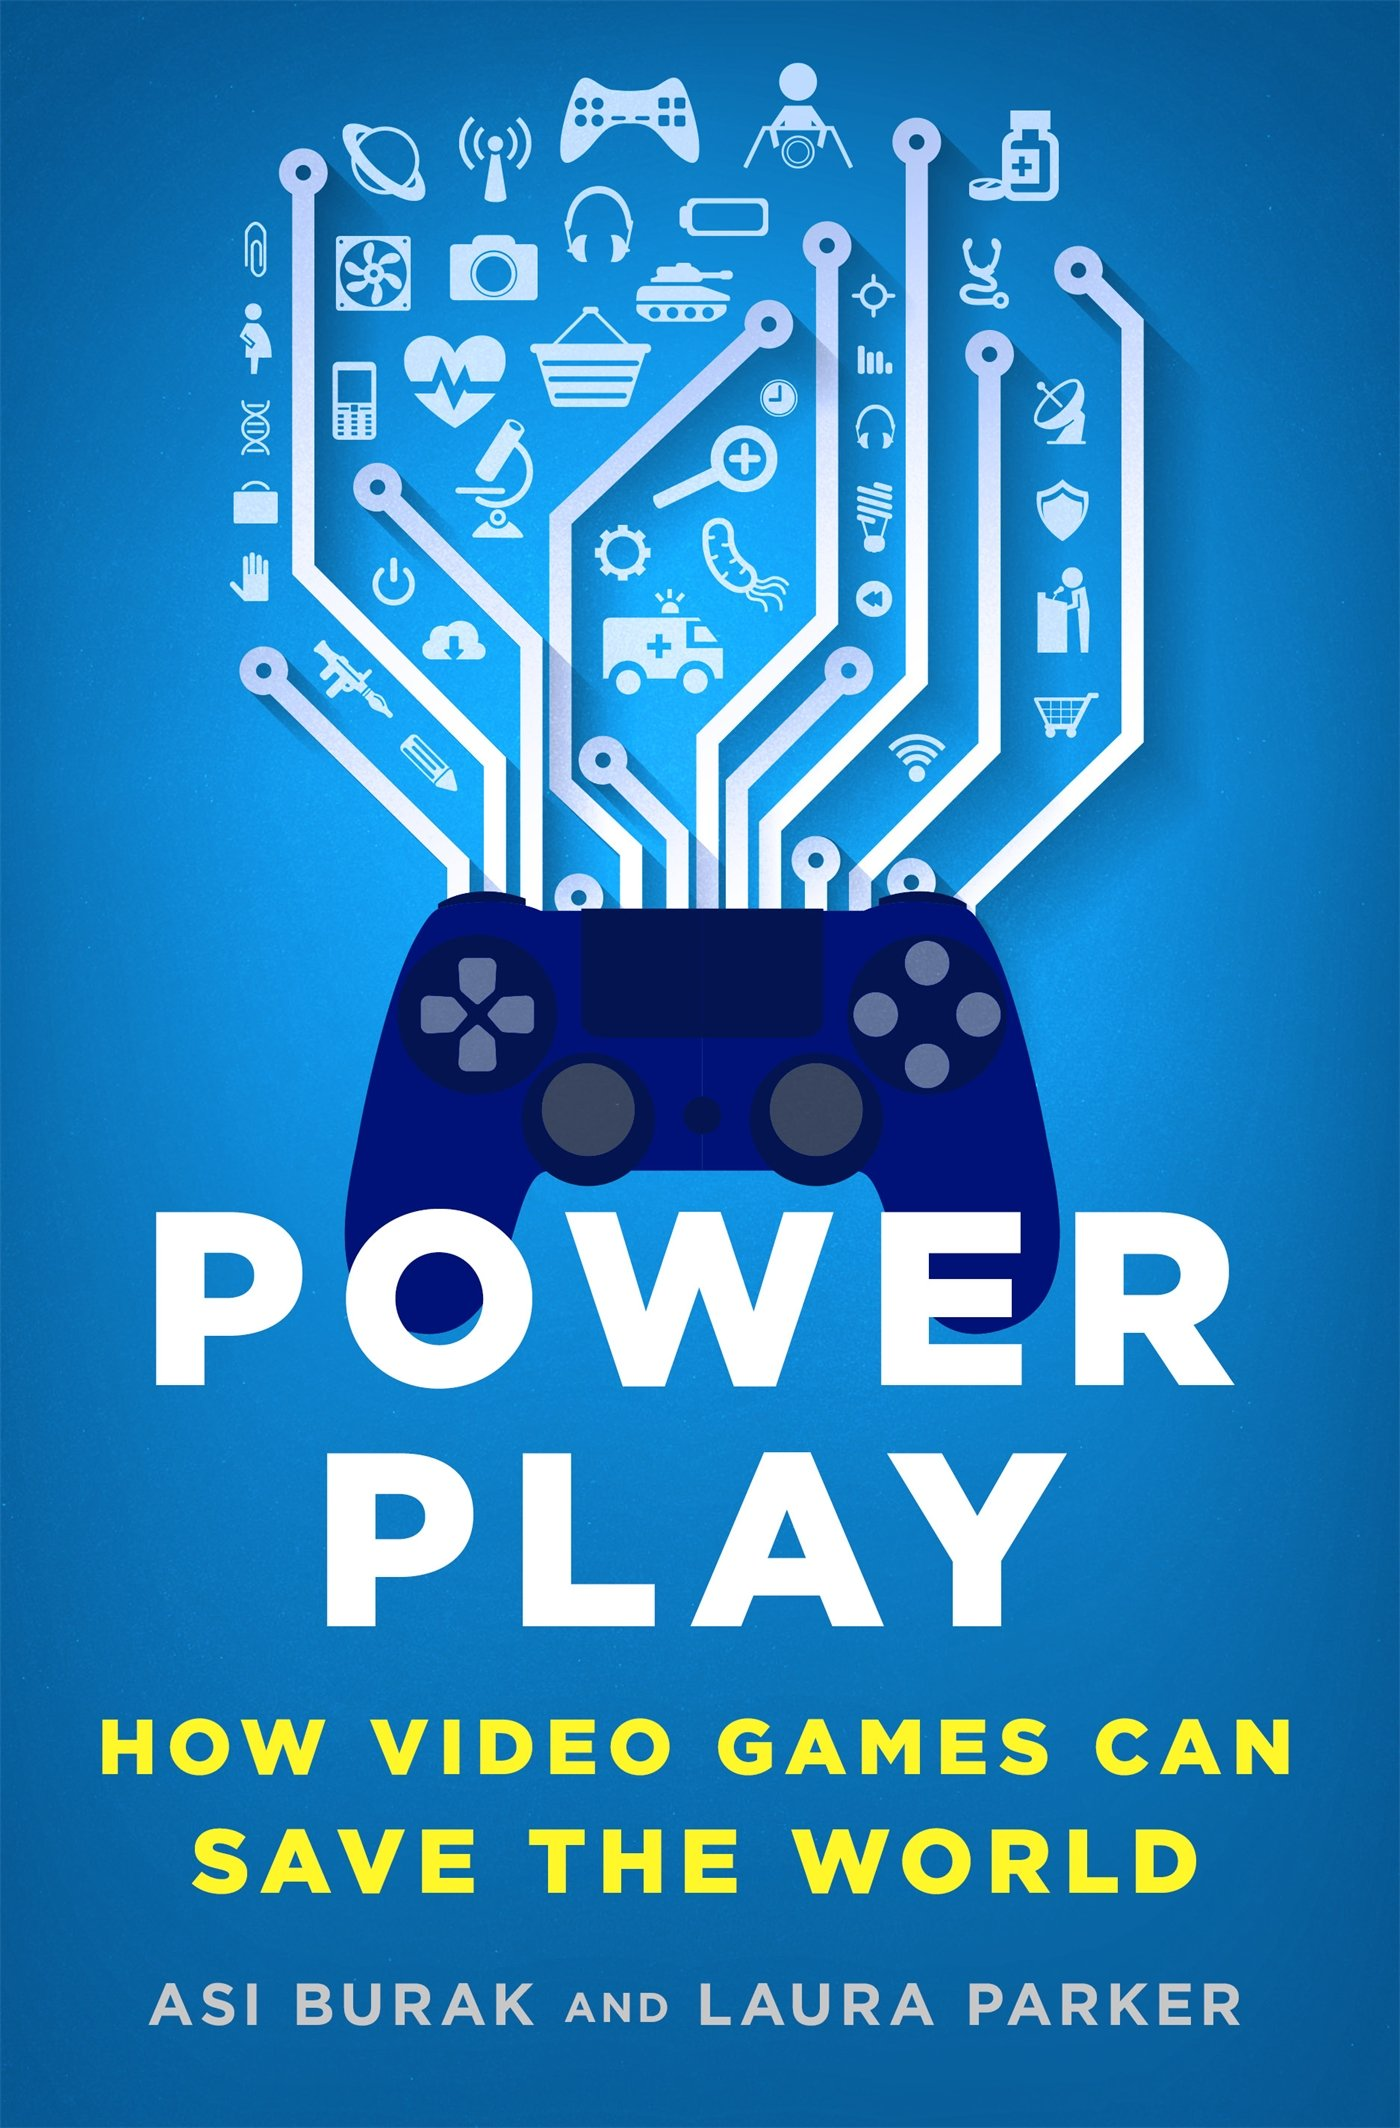 Amazon.com: Power Play: How Video Games Can Save the World (9781250089335): Burak, Asi, Parker, Laura: Books